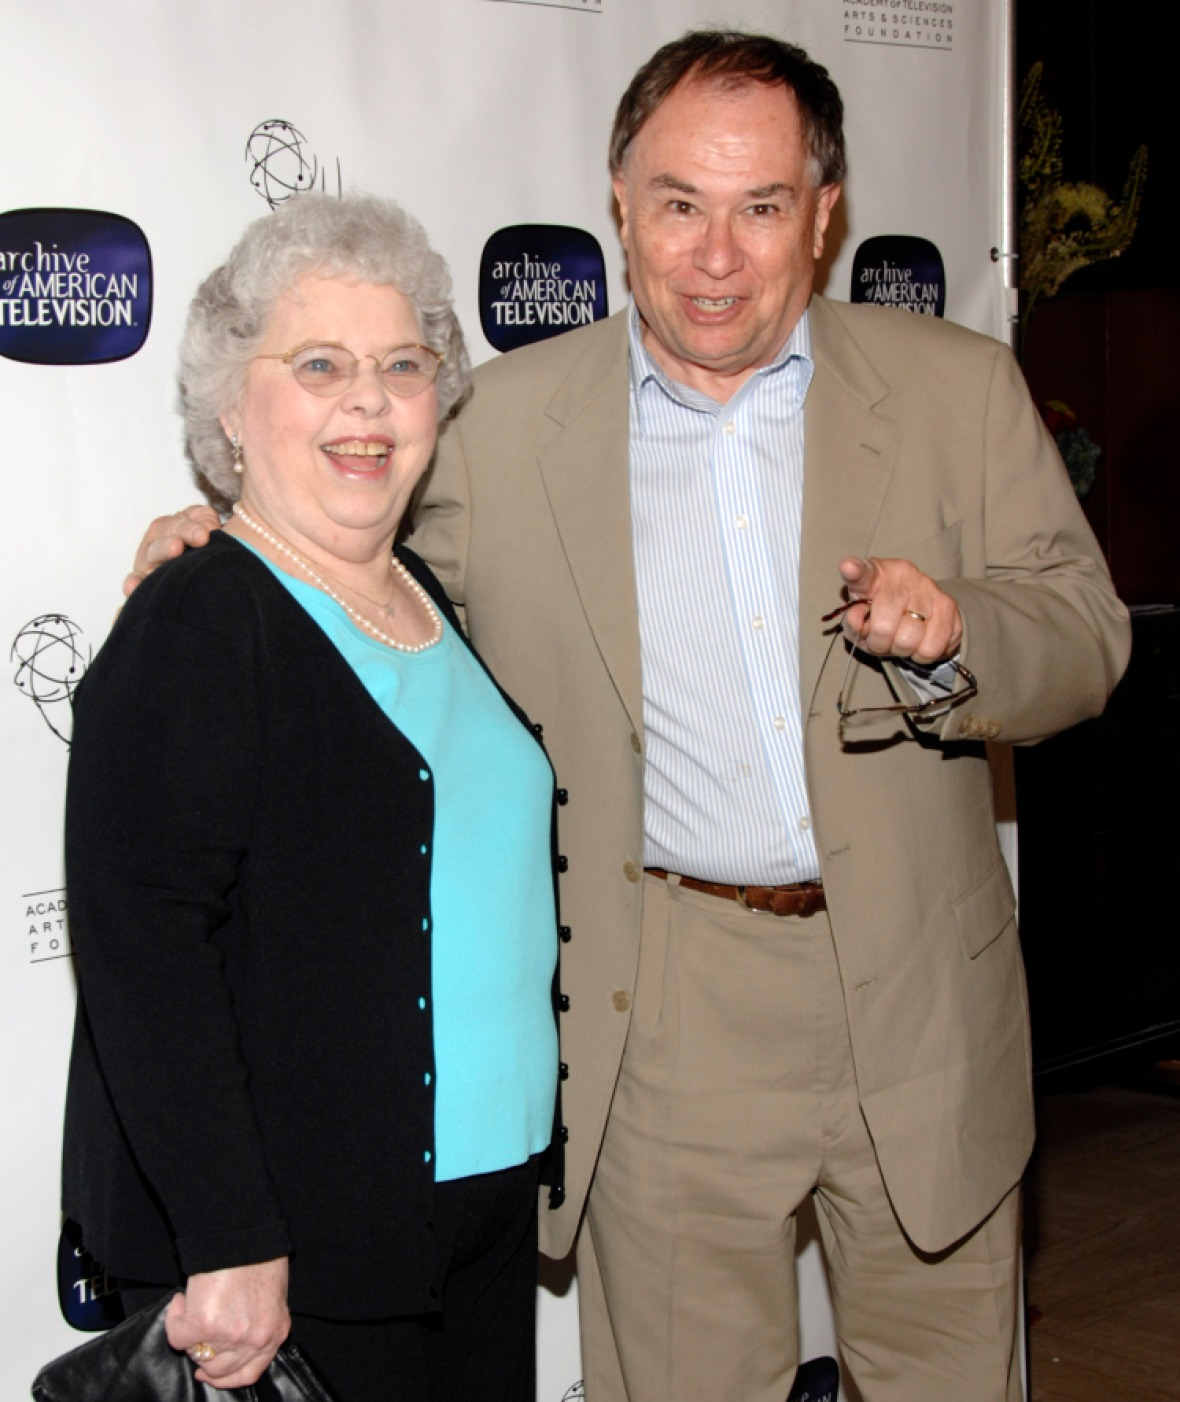 joanne rogers and david newell getty images